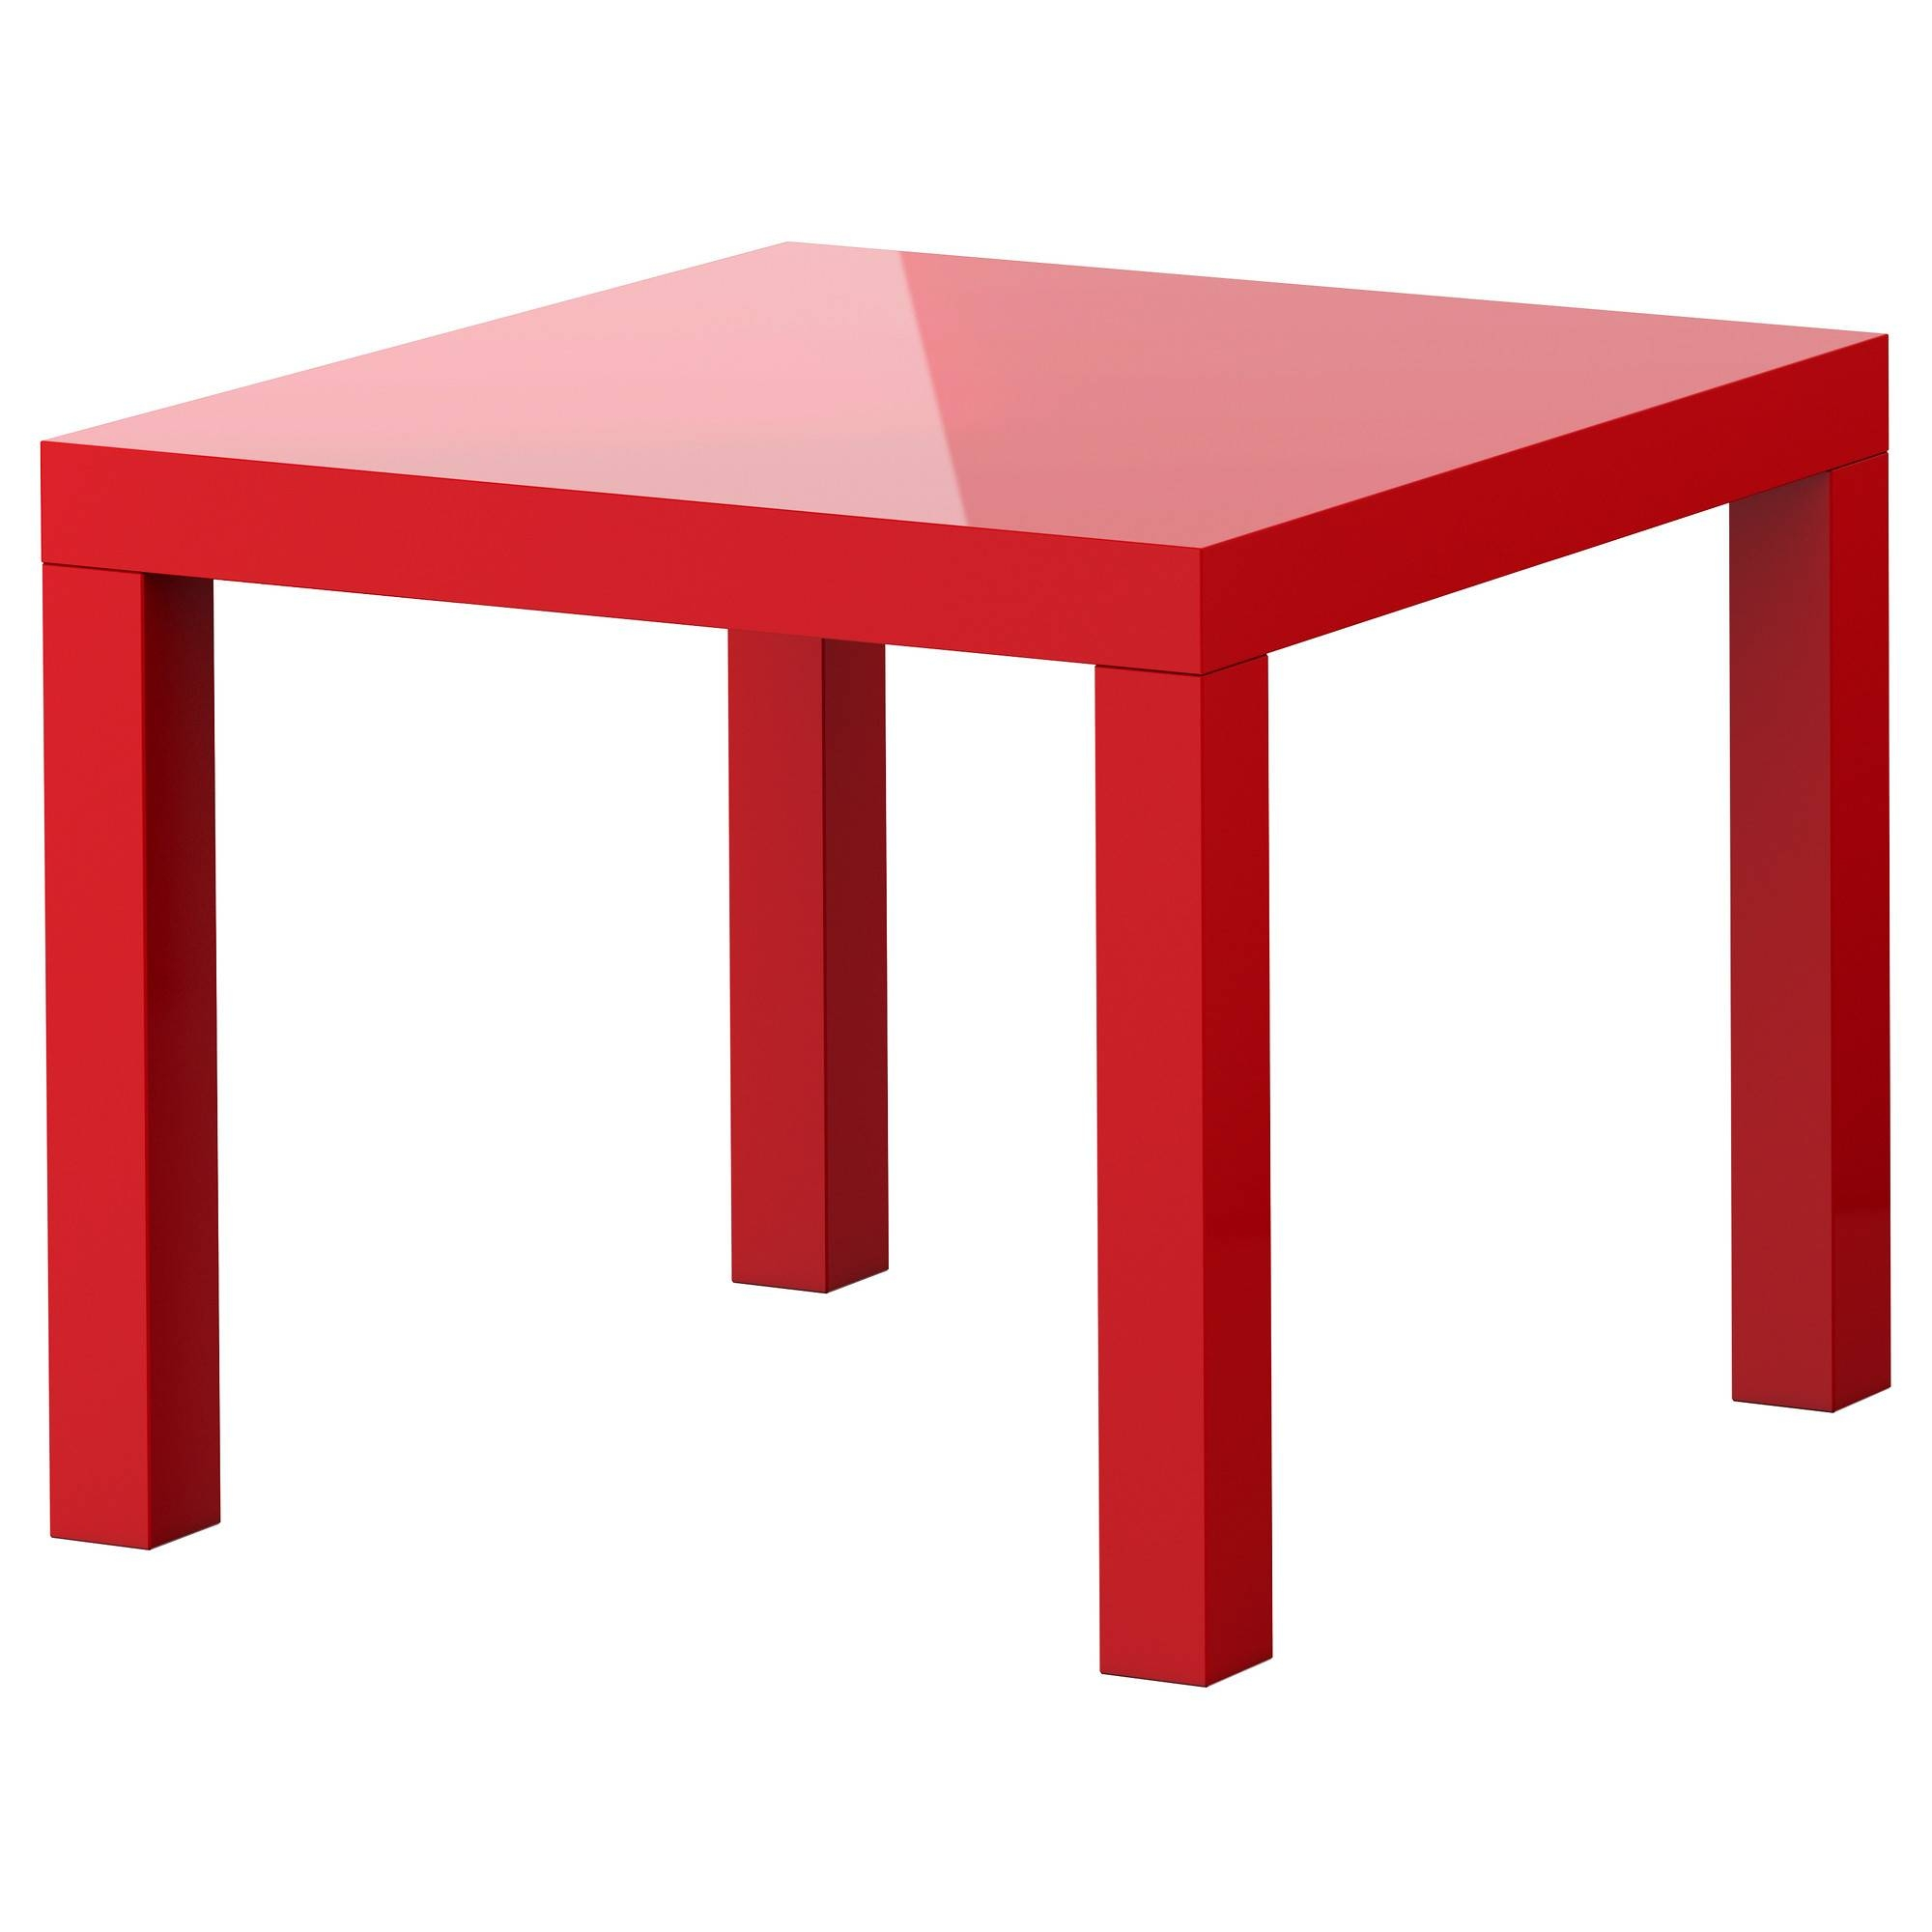 Coffee Tables & Console Tables - Ikea for Red Coffee Table (Image 9 of 30)